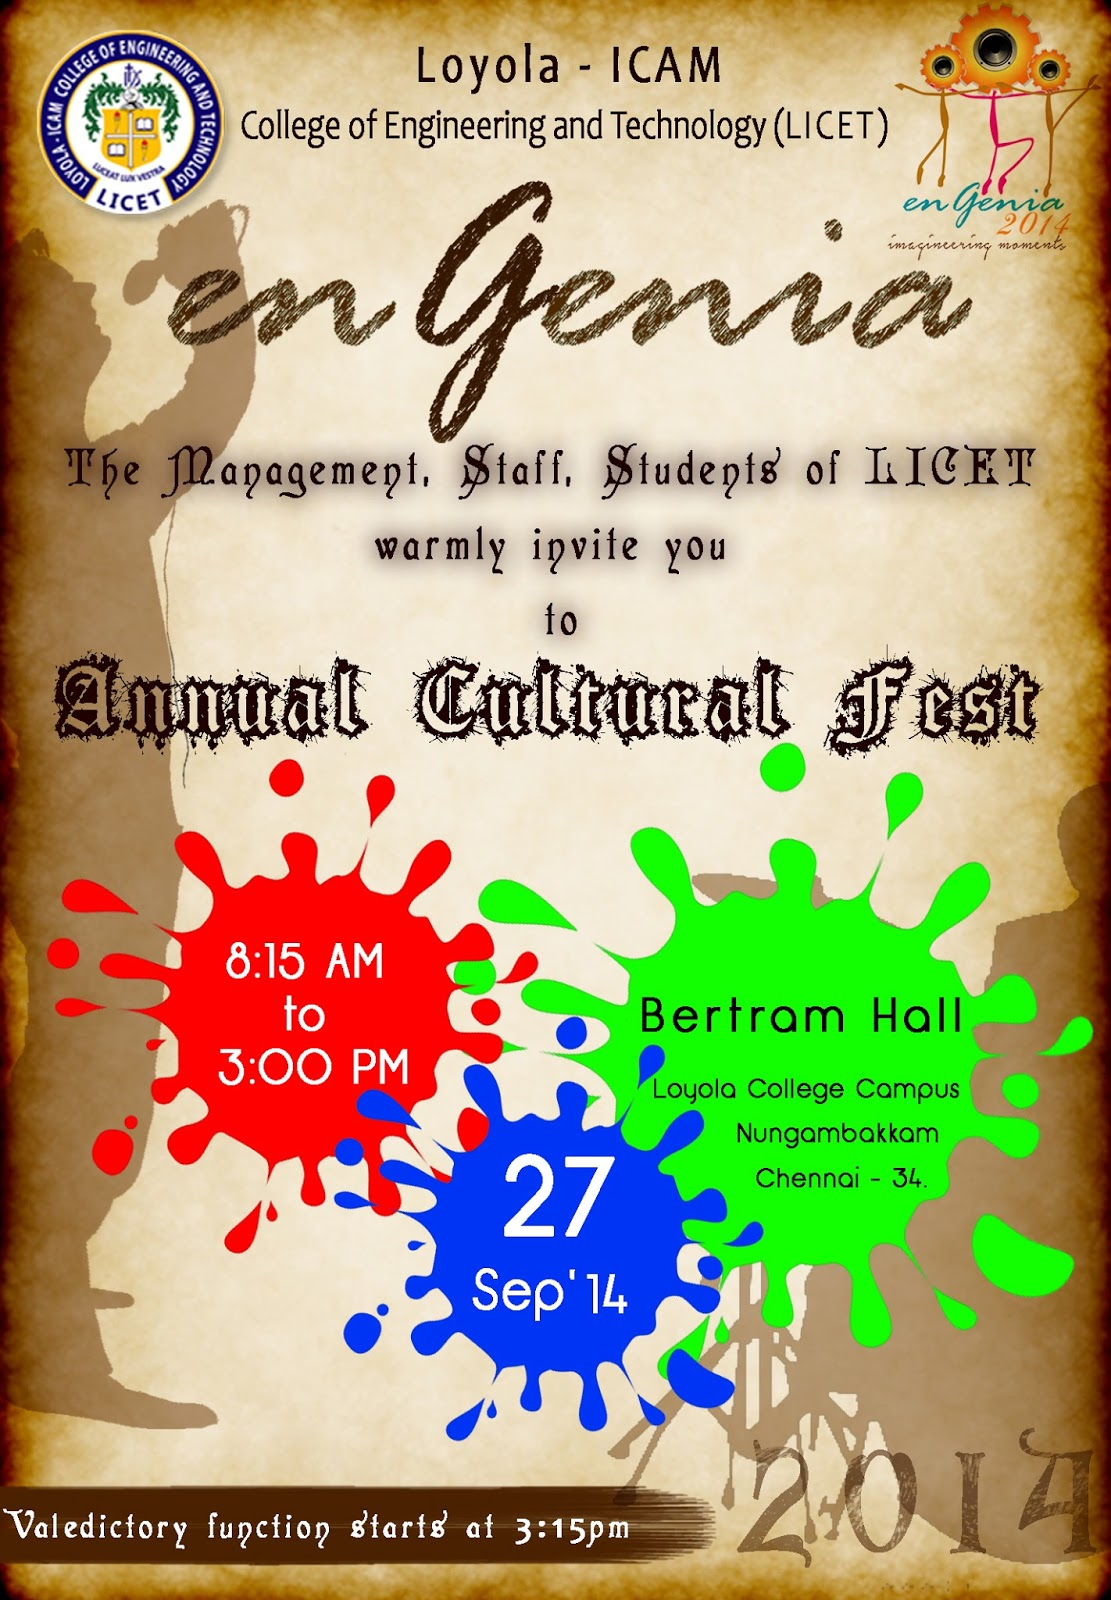 College cultural fest invitation template anselm and anselm college cultural fest invitation template stopboris Choice Image